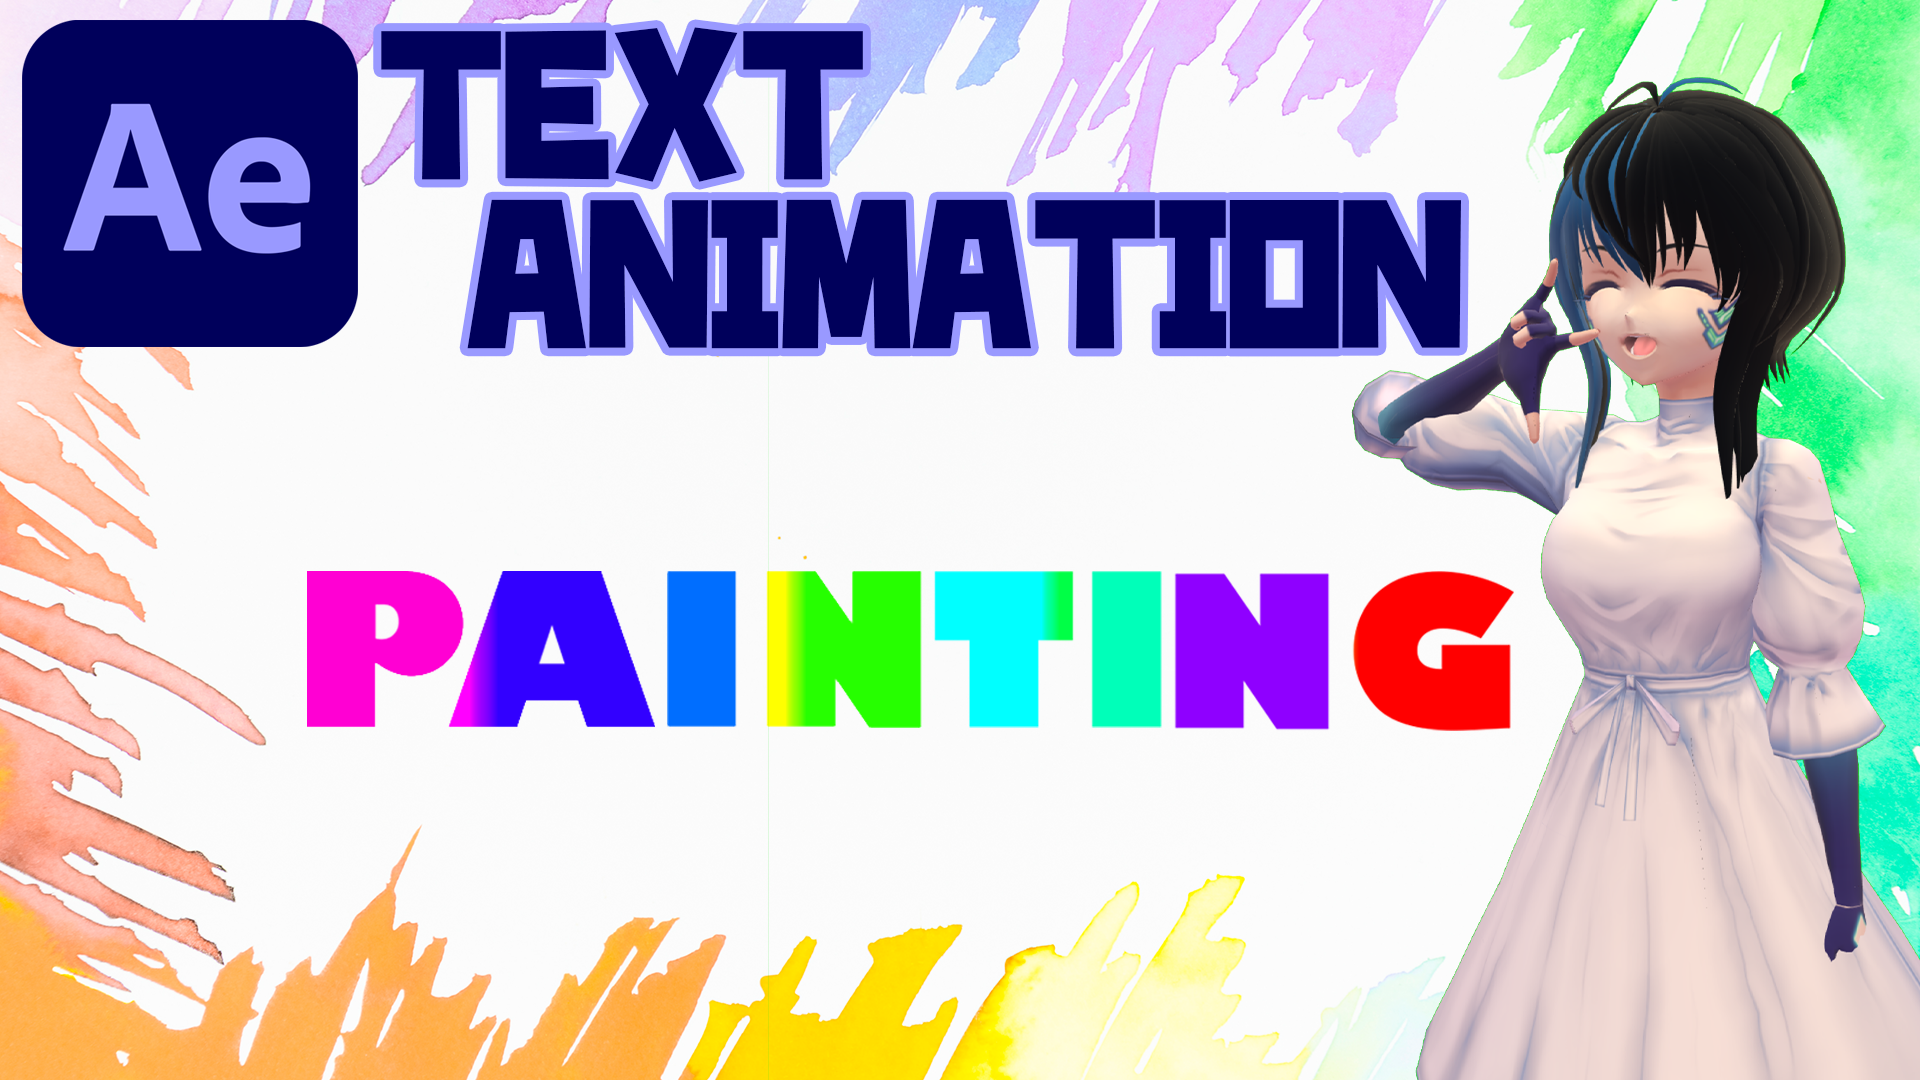 COLOR FULL TEXT ANIMATION